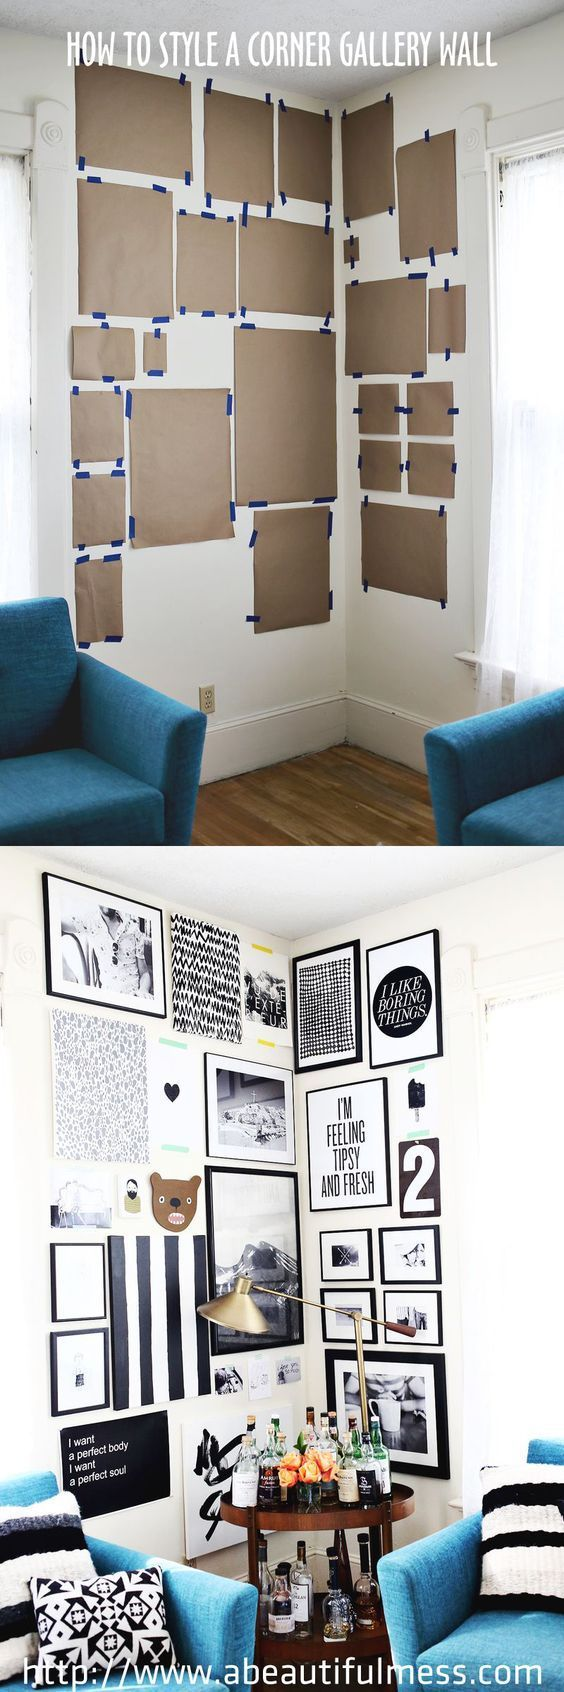 How to Style a Corner Gallery Wall